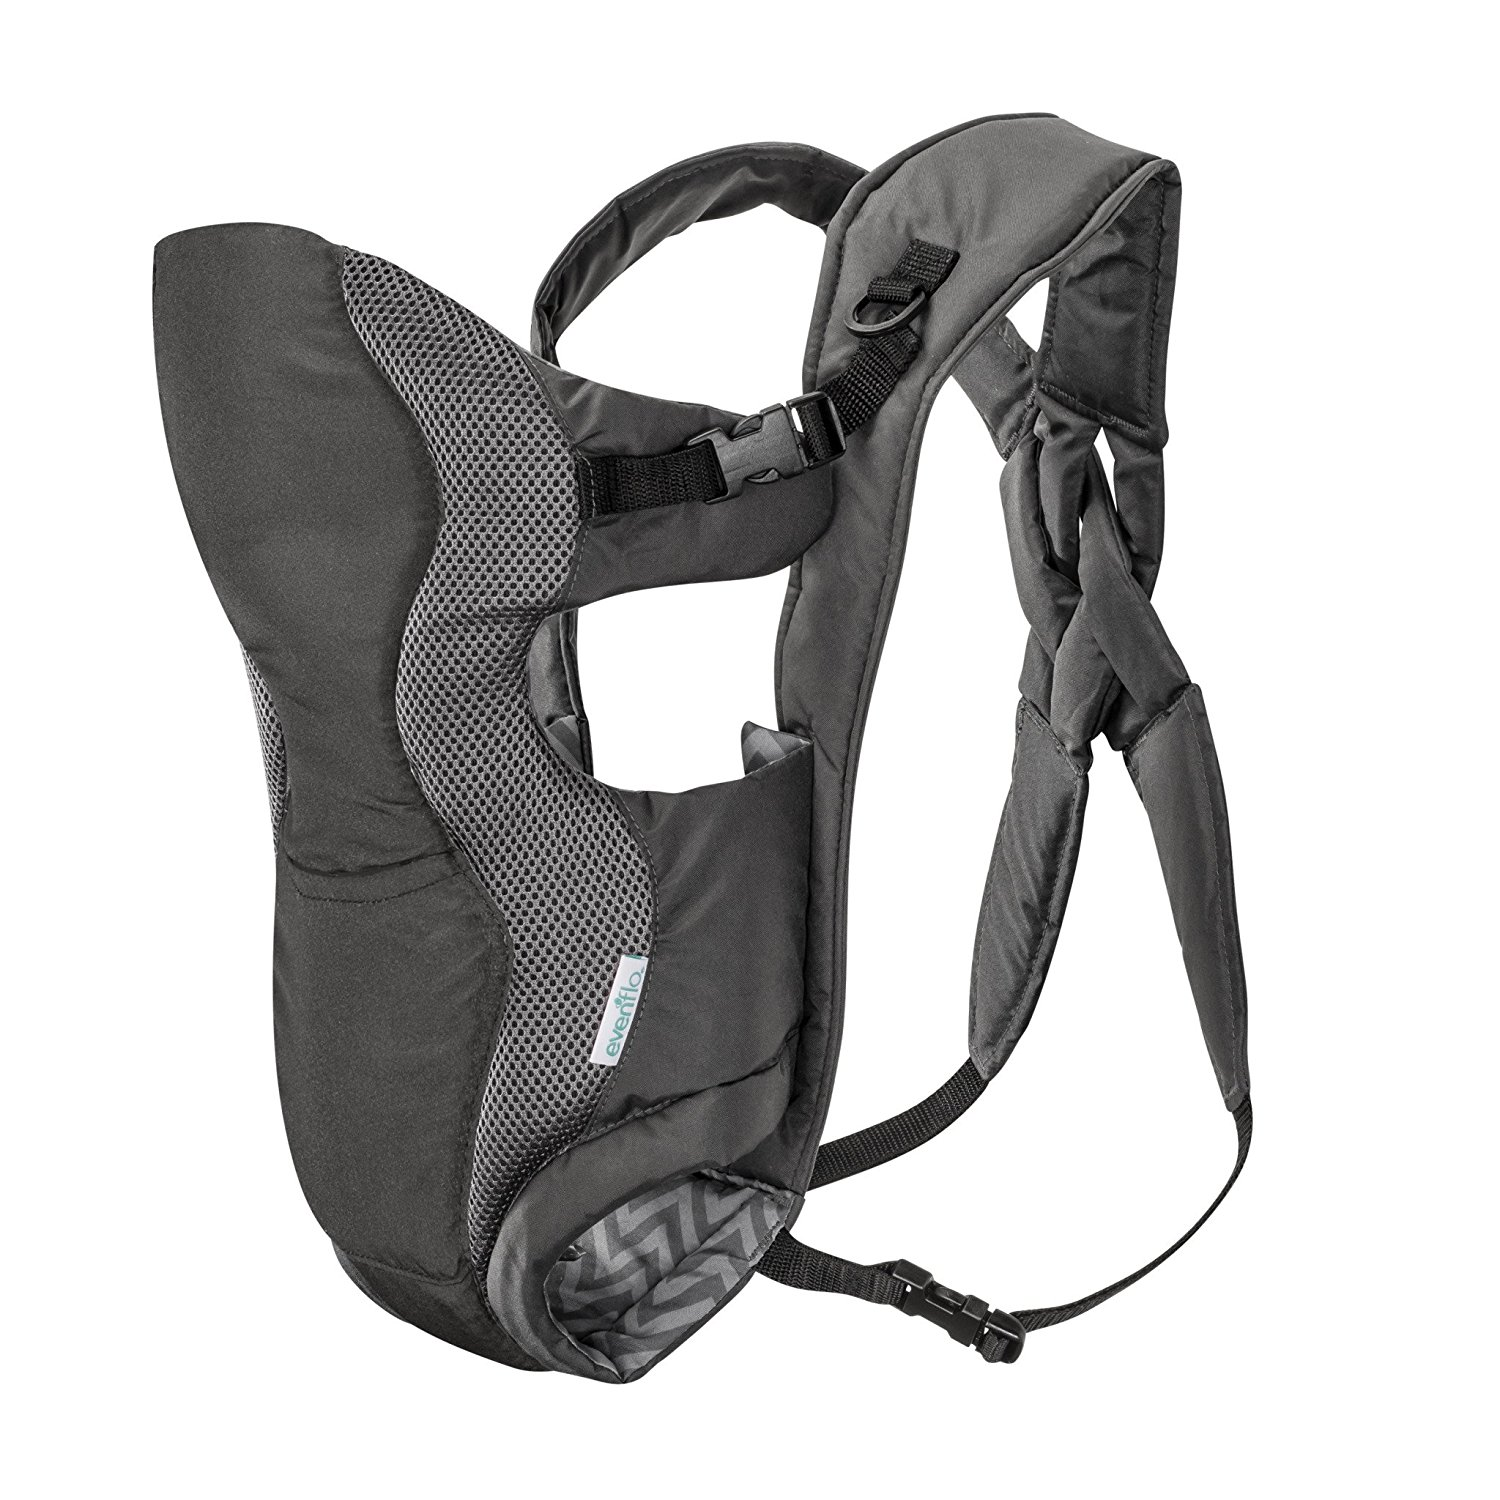 Breathable Soft Carrier, Grey Chevron, Discontinued 3in1 Front Infants Black Orange Sling Breathable Made... by Evenflo